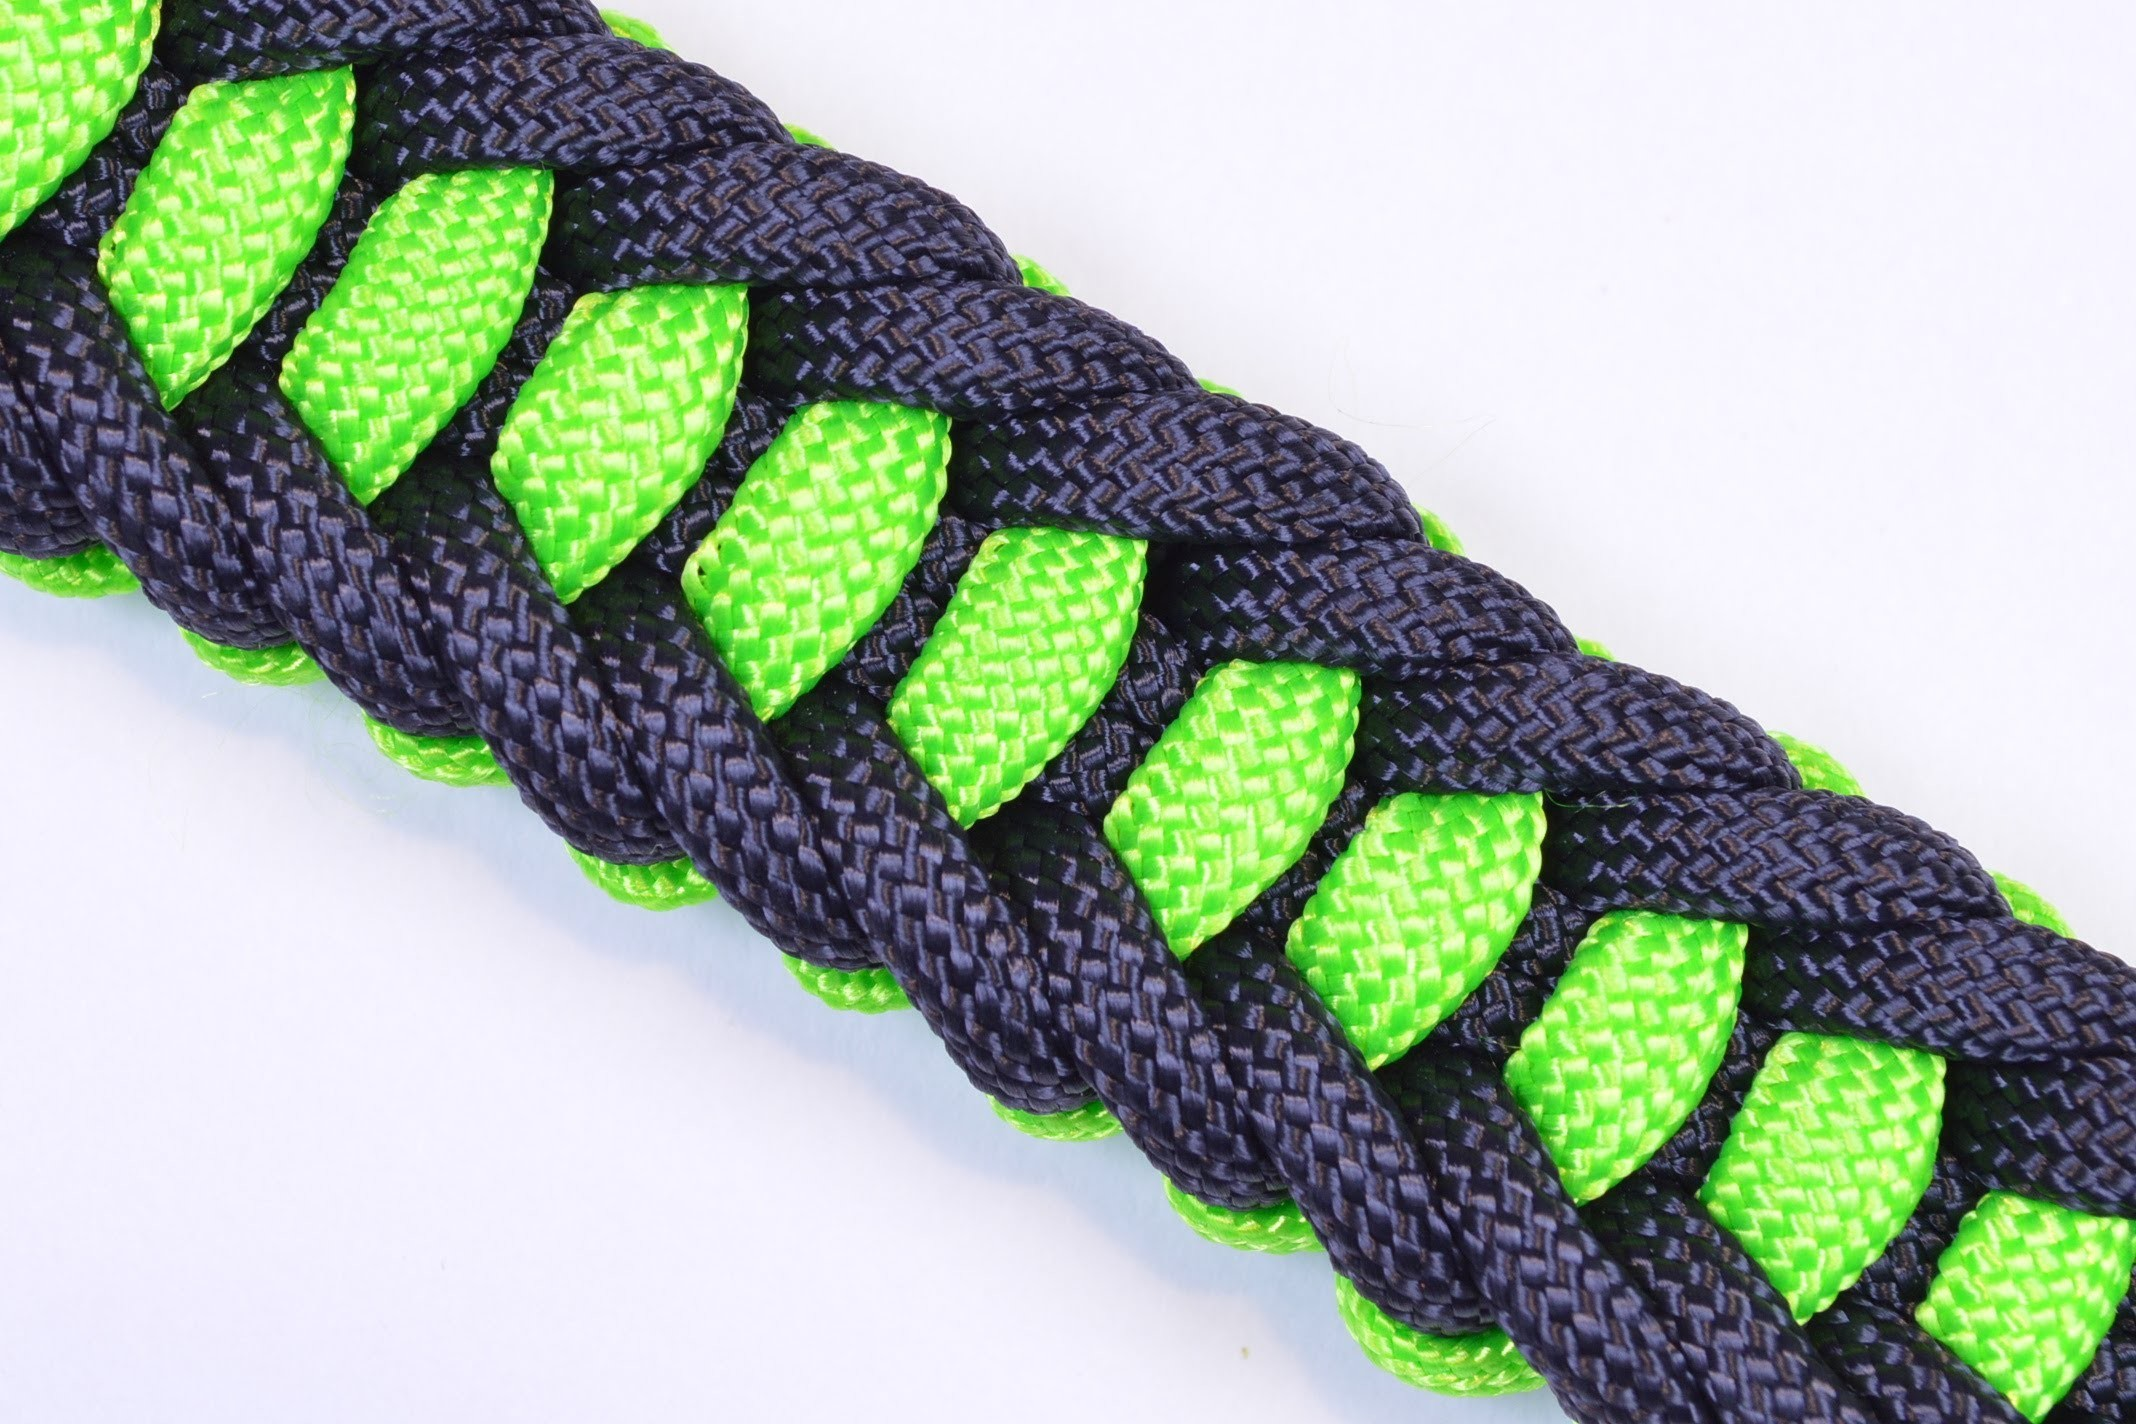 Make the Jagged Ladder Paracord Survival Bracelet with Buckle - BoredParacord